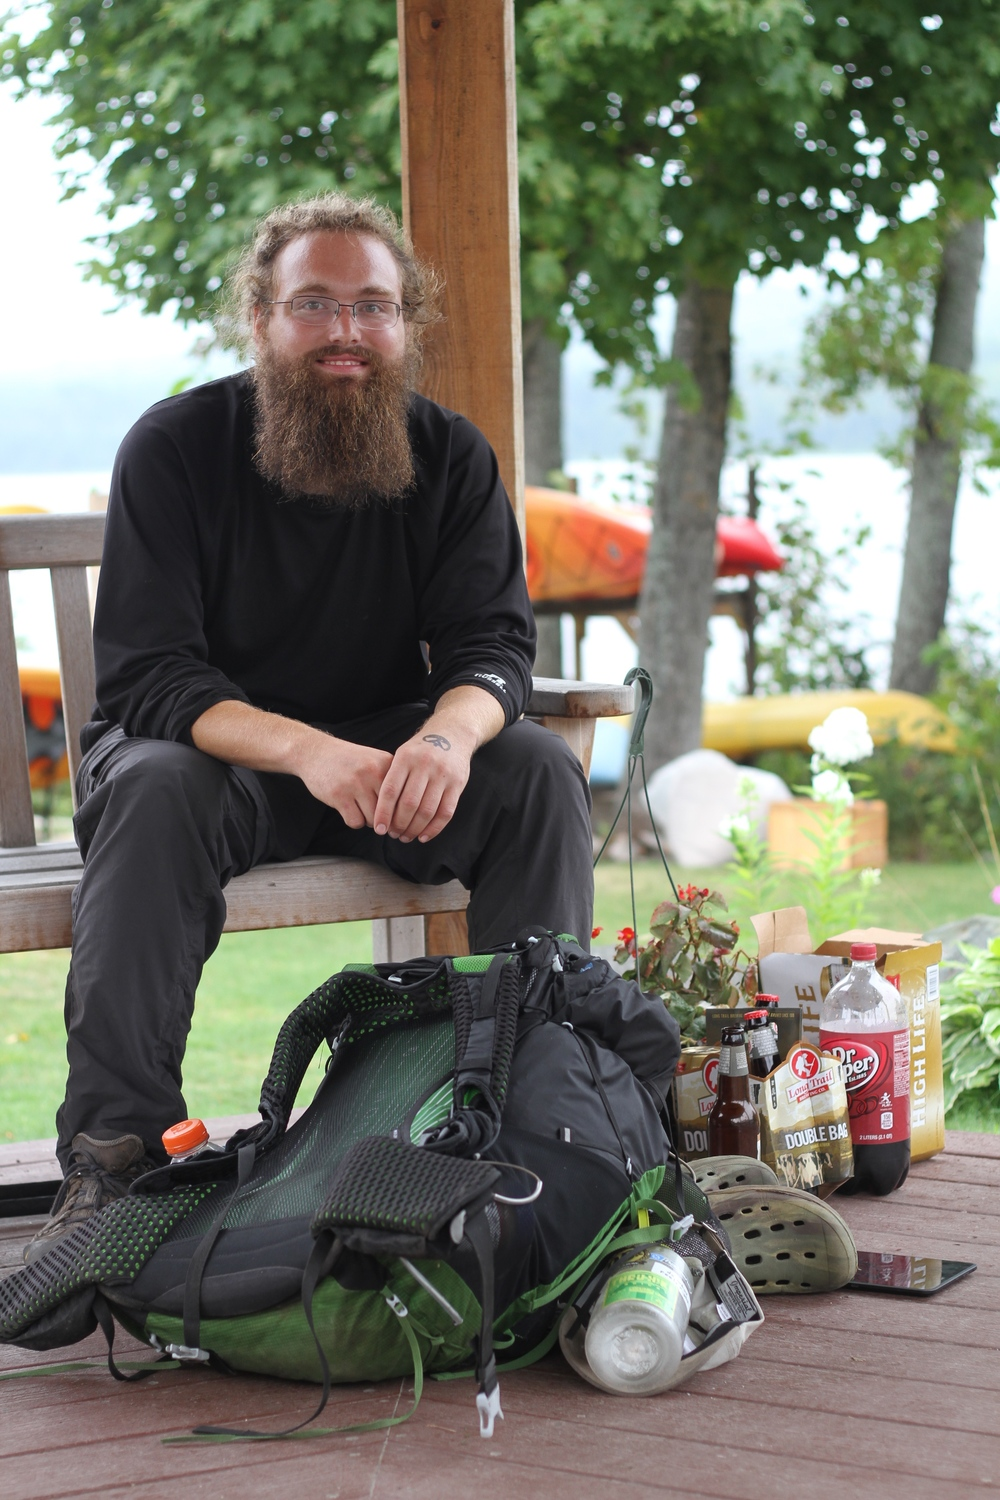 "This is Dan. He is an Appalachian Trail thru-hiker that I met in Rangeley, Maine. I was staying with my friend in Rangeley when he said we told me we might see some thru hikers. Dan blew me away. His story of hiking the AT was intriguing, beautiful and inspiring. I plan to hike the trail someday because of him. He compared his experience to a day job. Not every day did he wake up and want to hike. Some days he would wake up and not want to take another step. Even if he didn't want to hike (or go to work) he still did it each day. Starting in Georgia in April, he was nearing the end of his trip. He was given the trail name ""Grizzly"" by other hikers because of his similar appearance to Grizzly Adams."